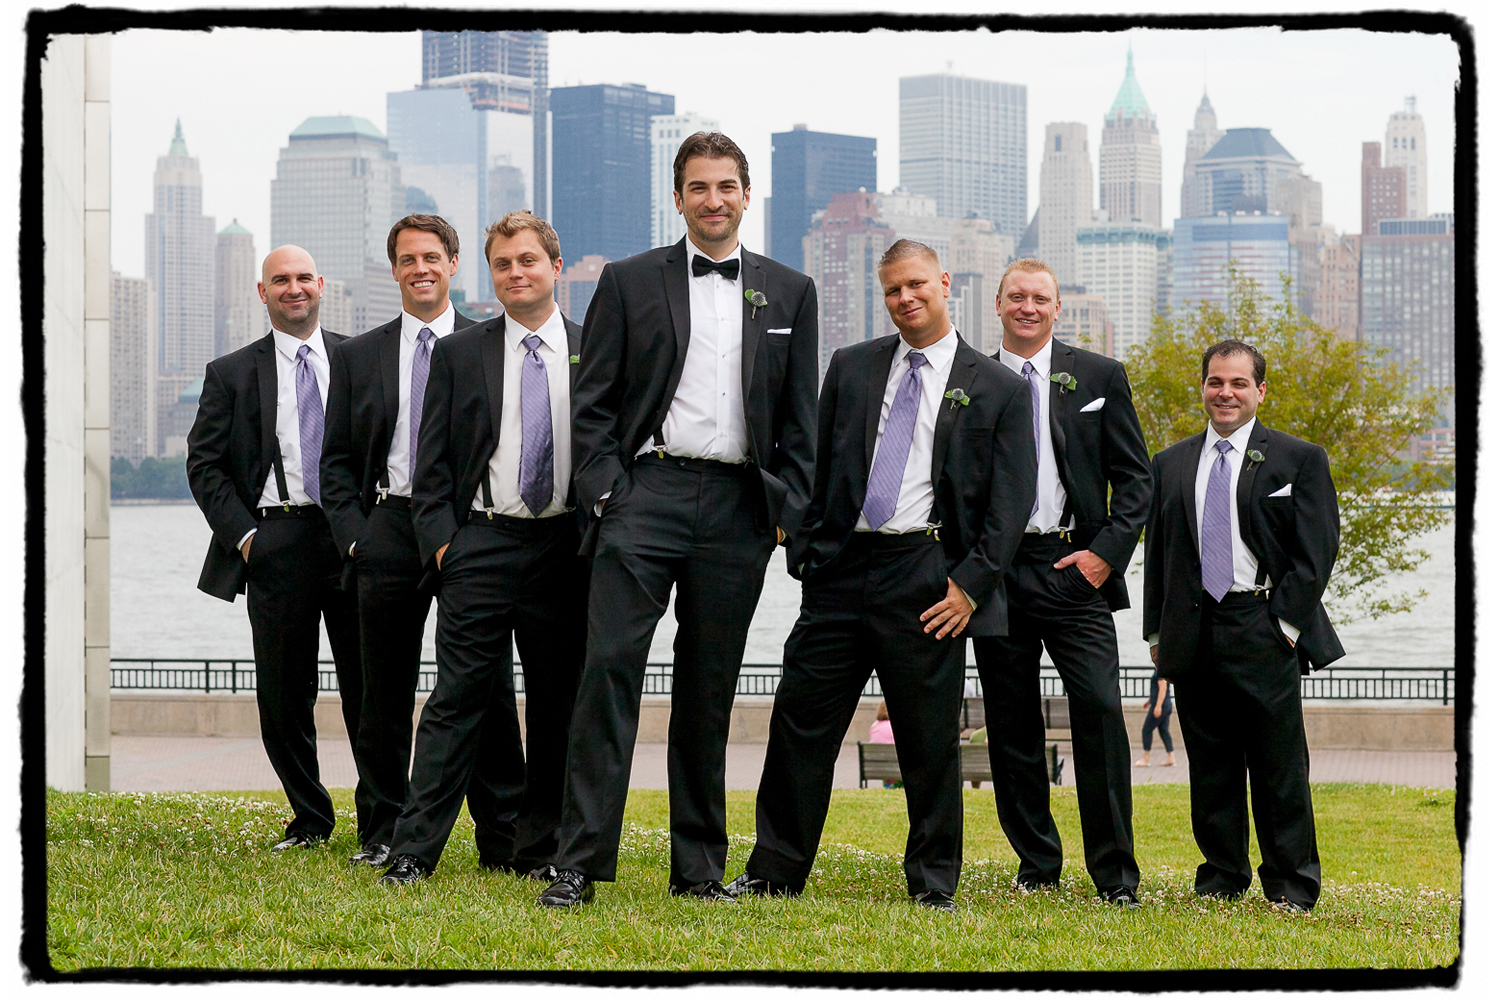 Rich and his groomsmen strike a pose with the NYC skyline in the background at Liberty House in Jersey City.